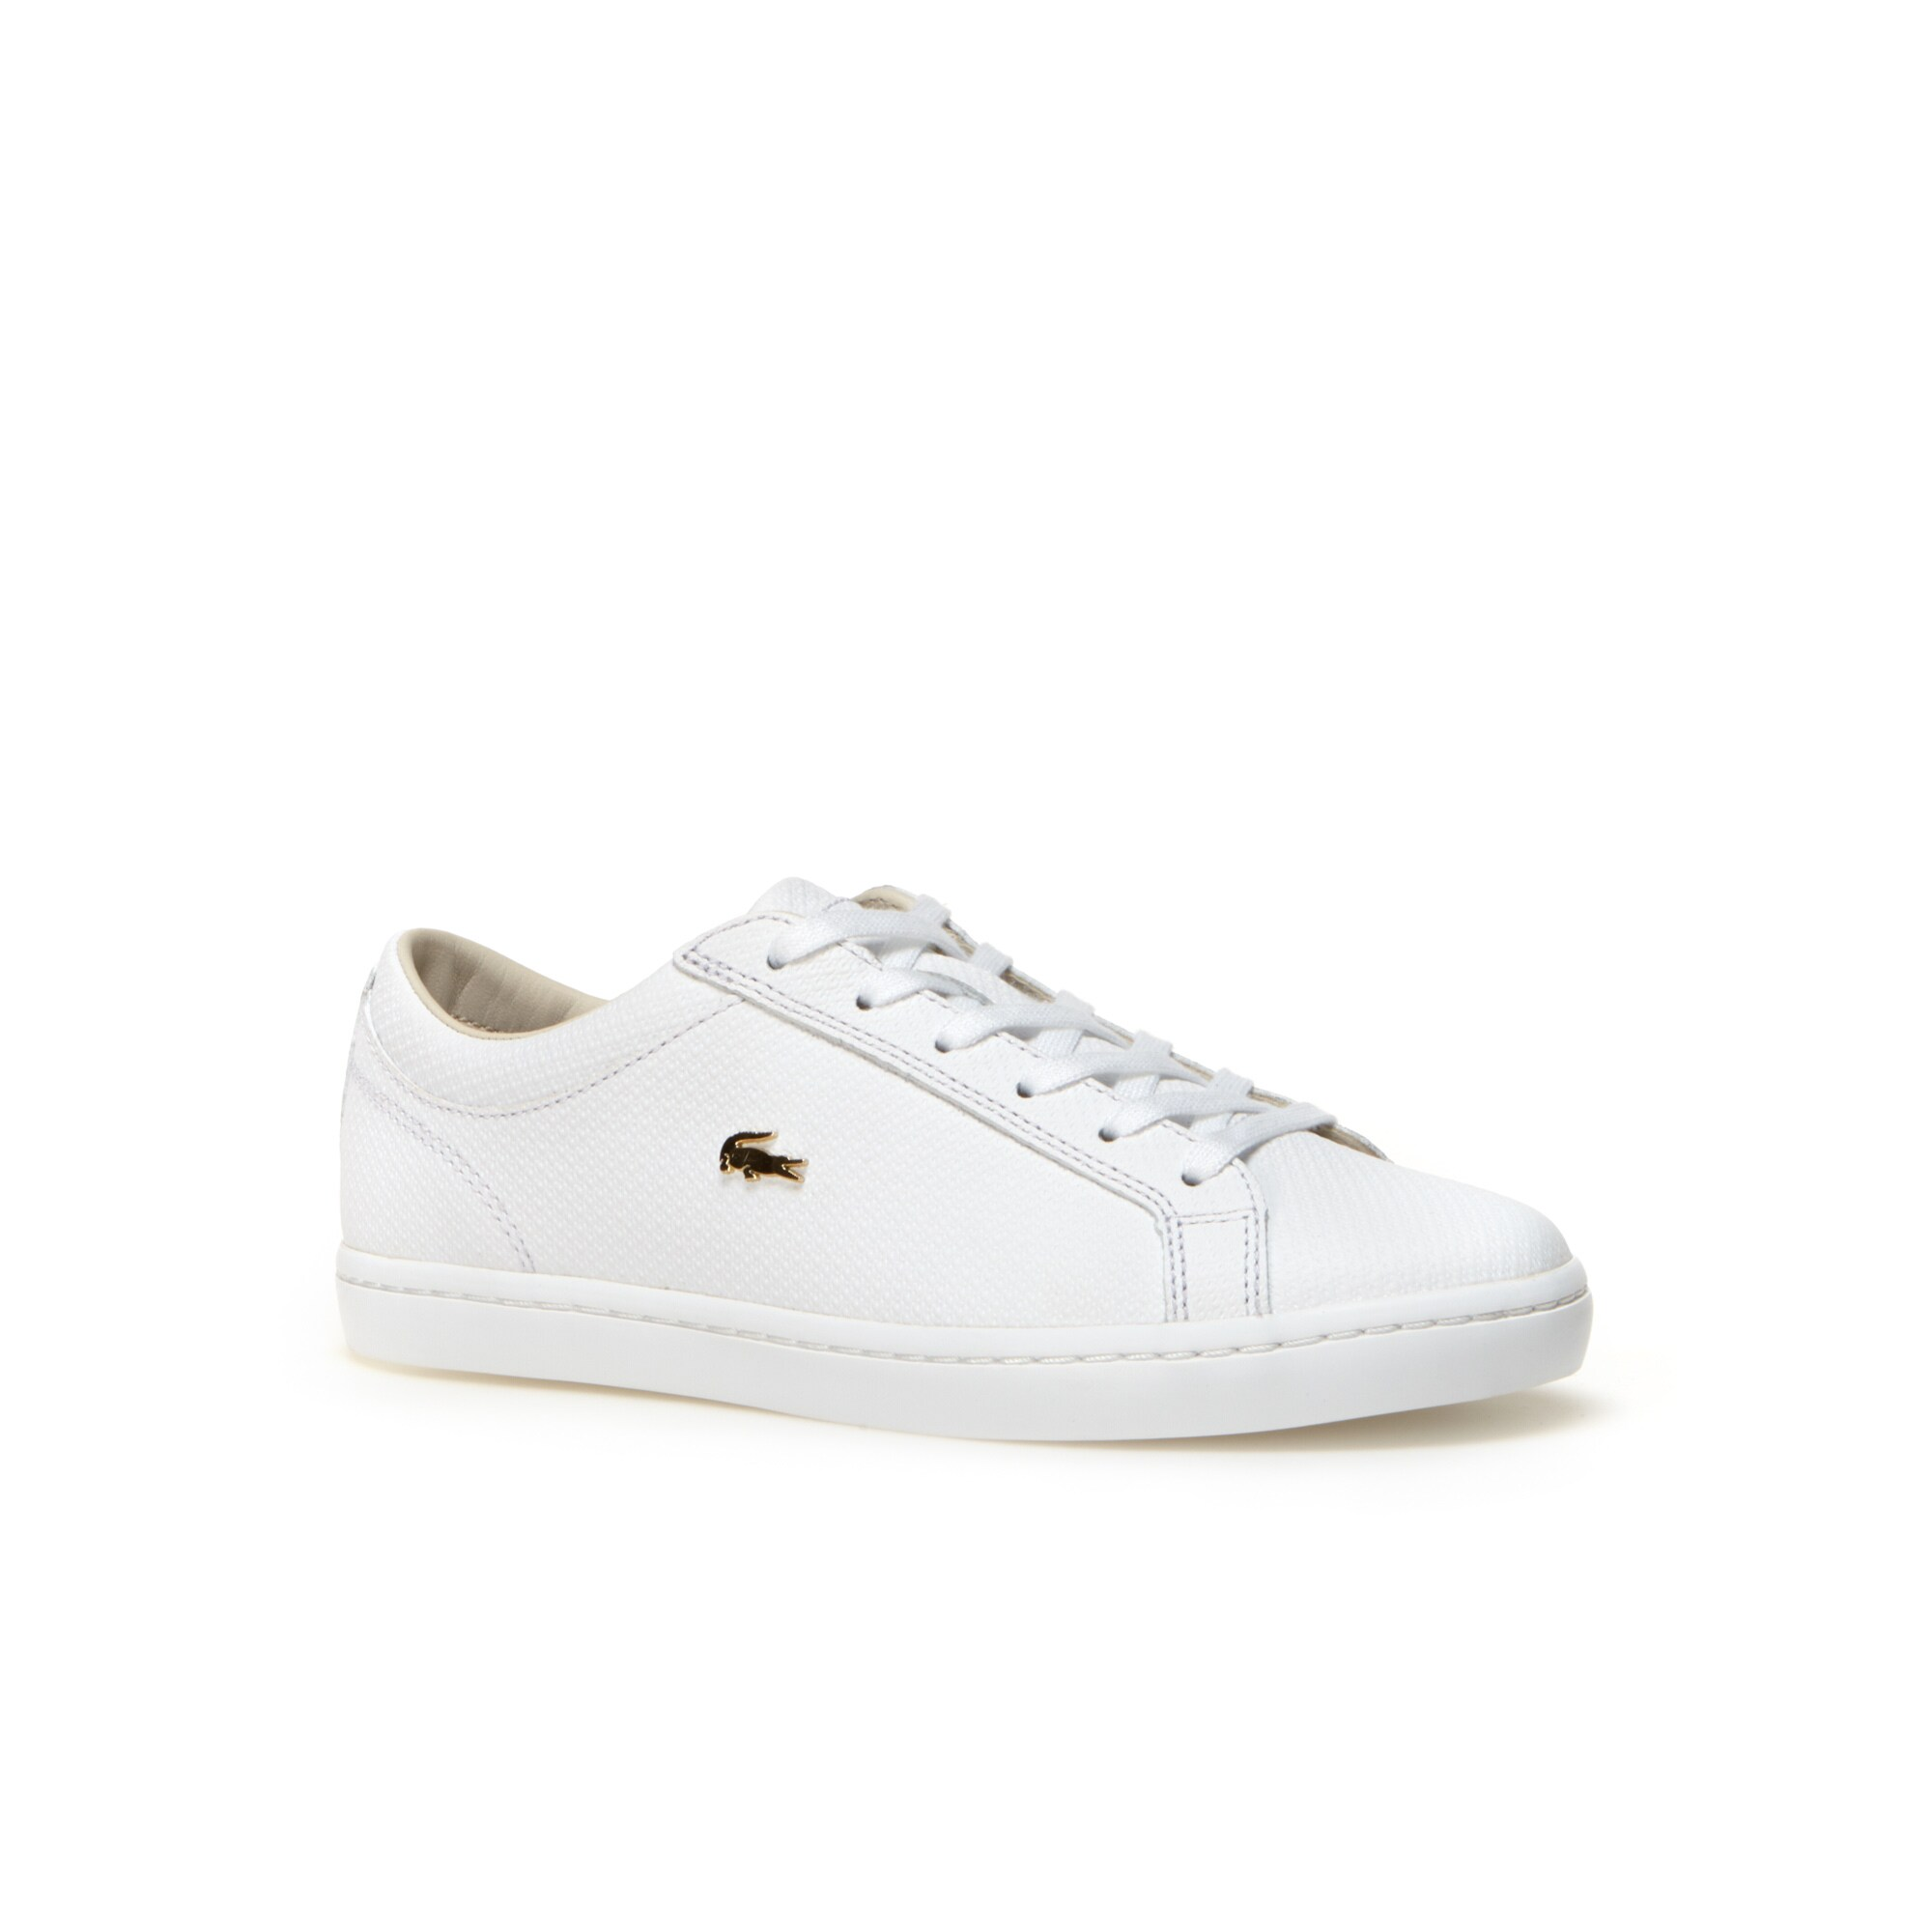 Shoes For WomenBootsTrainersSneakers Shoes For Lacoste Lacoste qVSzpUGM